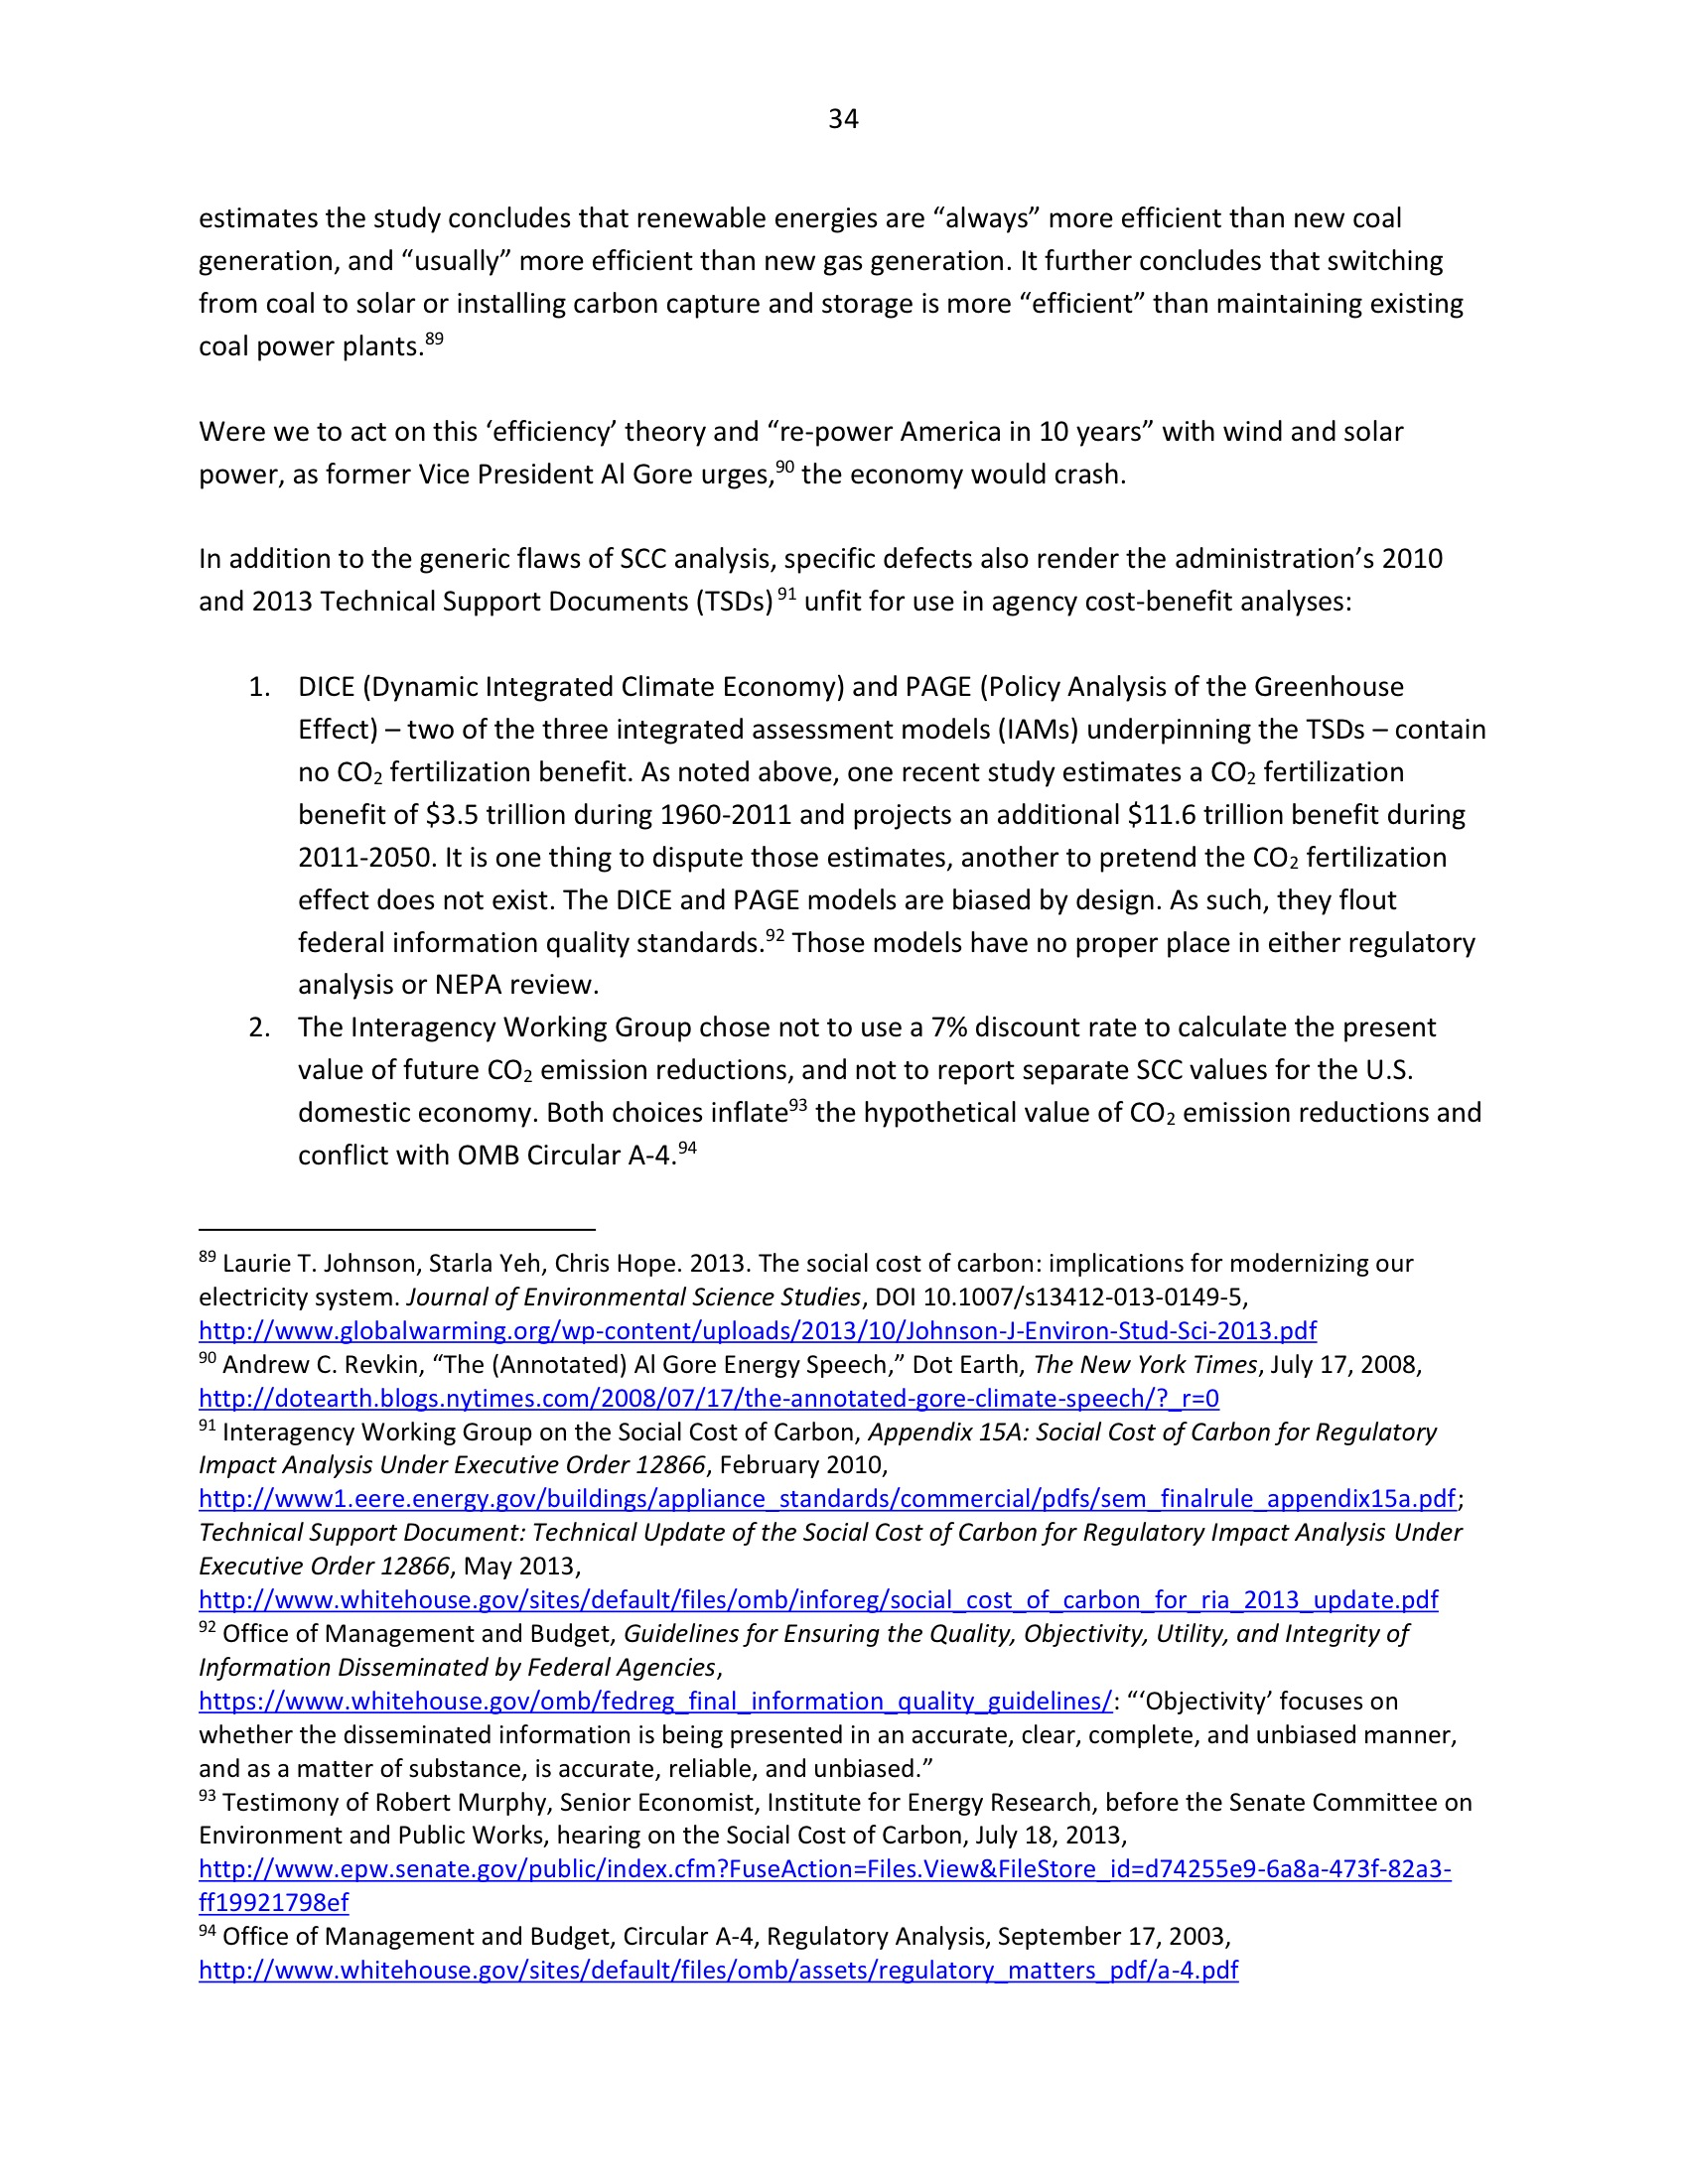 Marlo Lewis Competitive Enterprise Institute and Free Market Allies Comment Letter on NEPA GHG Guidance Document 106-34